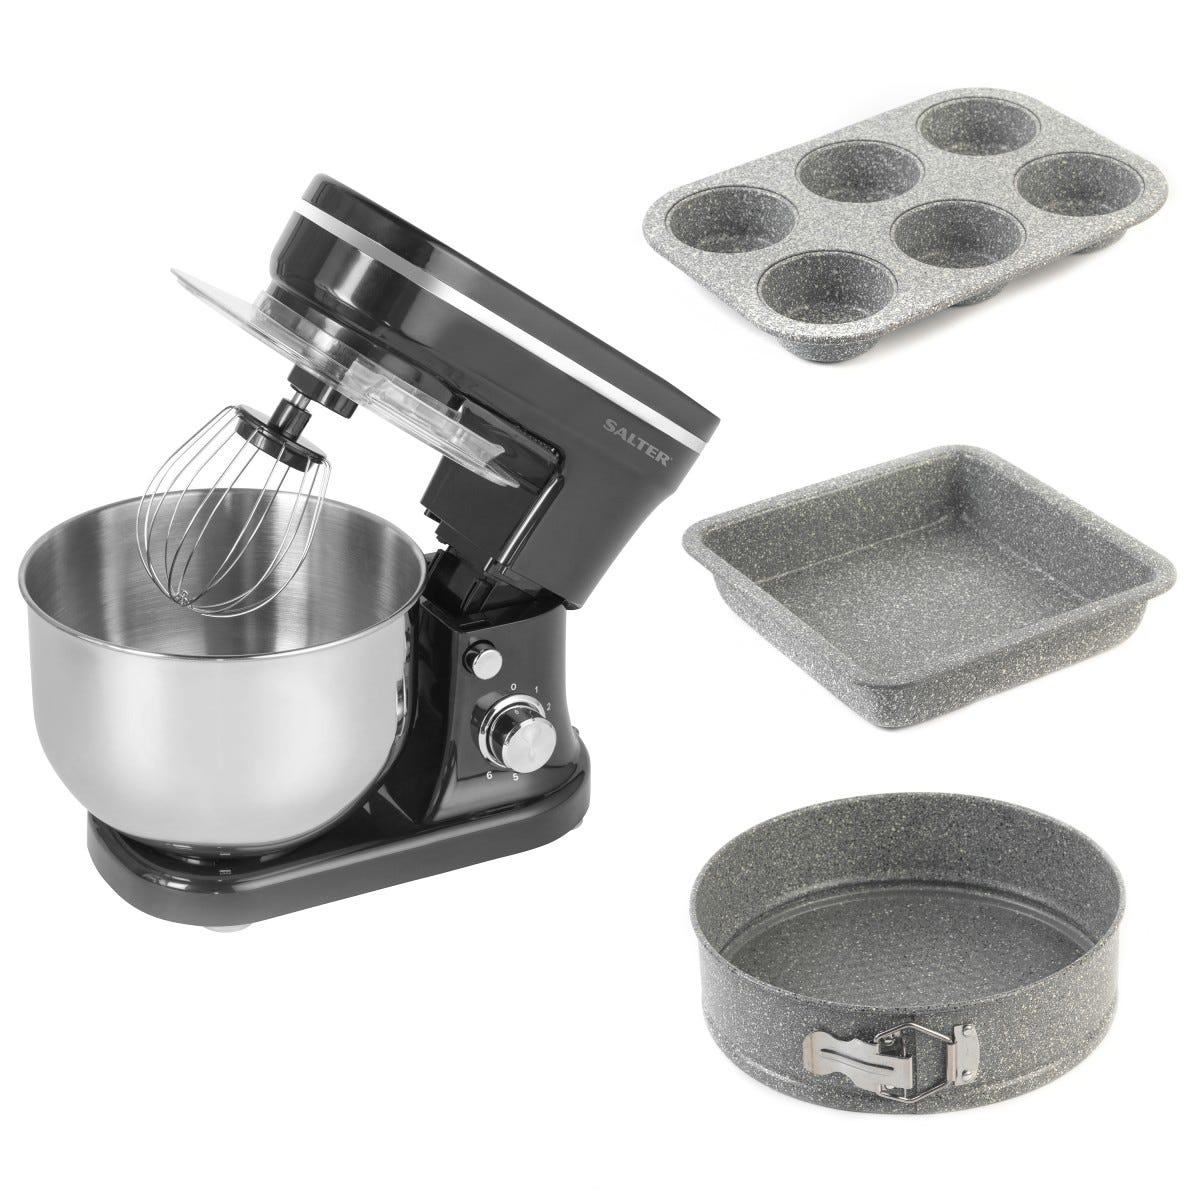 Salter COMBO-7102 5L Stand Mixer with 6 Speed Settings and Marble Collection Bakeware - Black & Silver